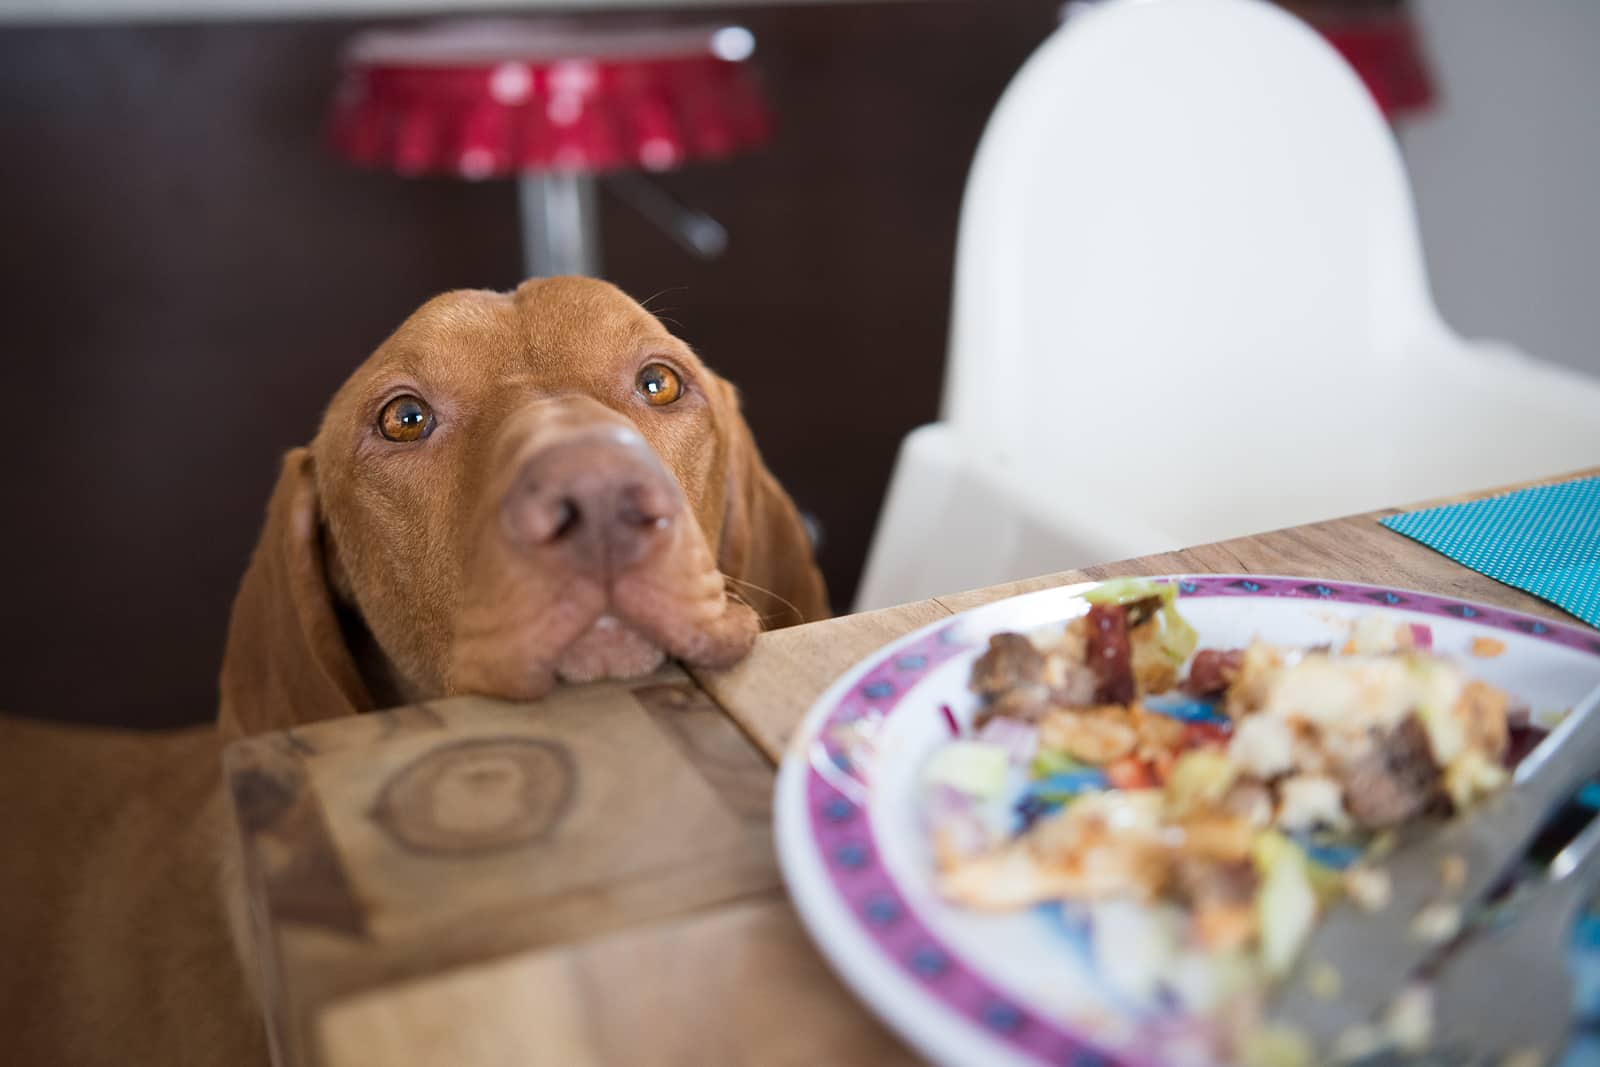 Dog's head placed on dinner table staring at human's food.